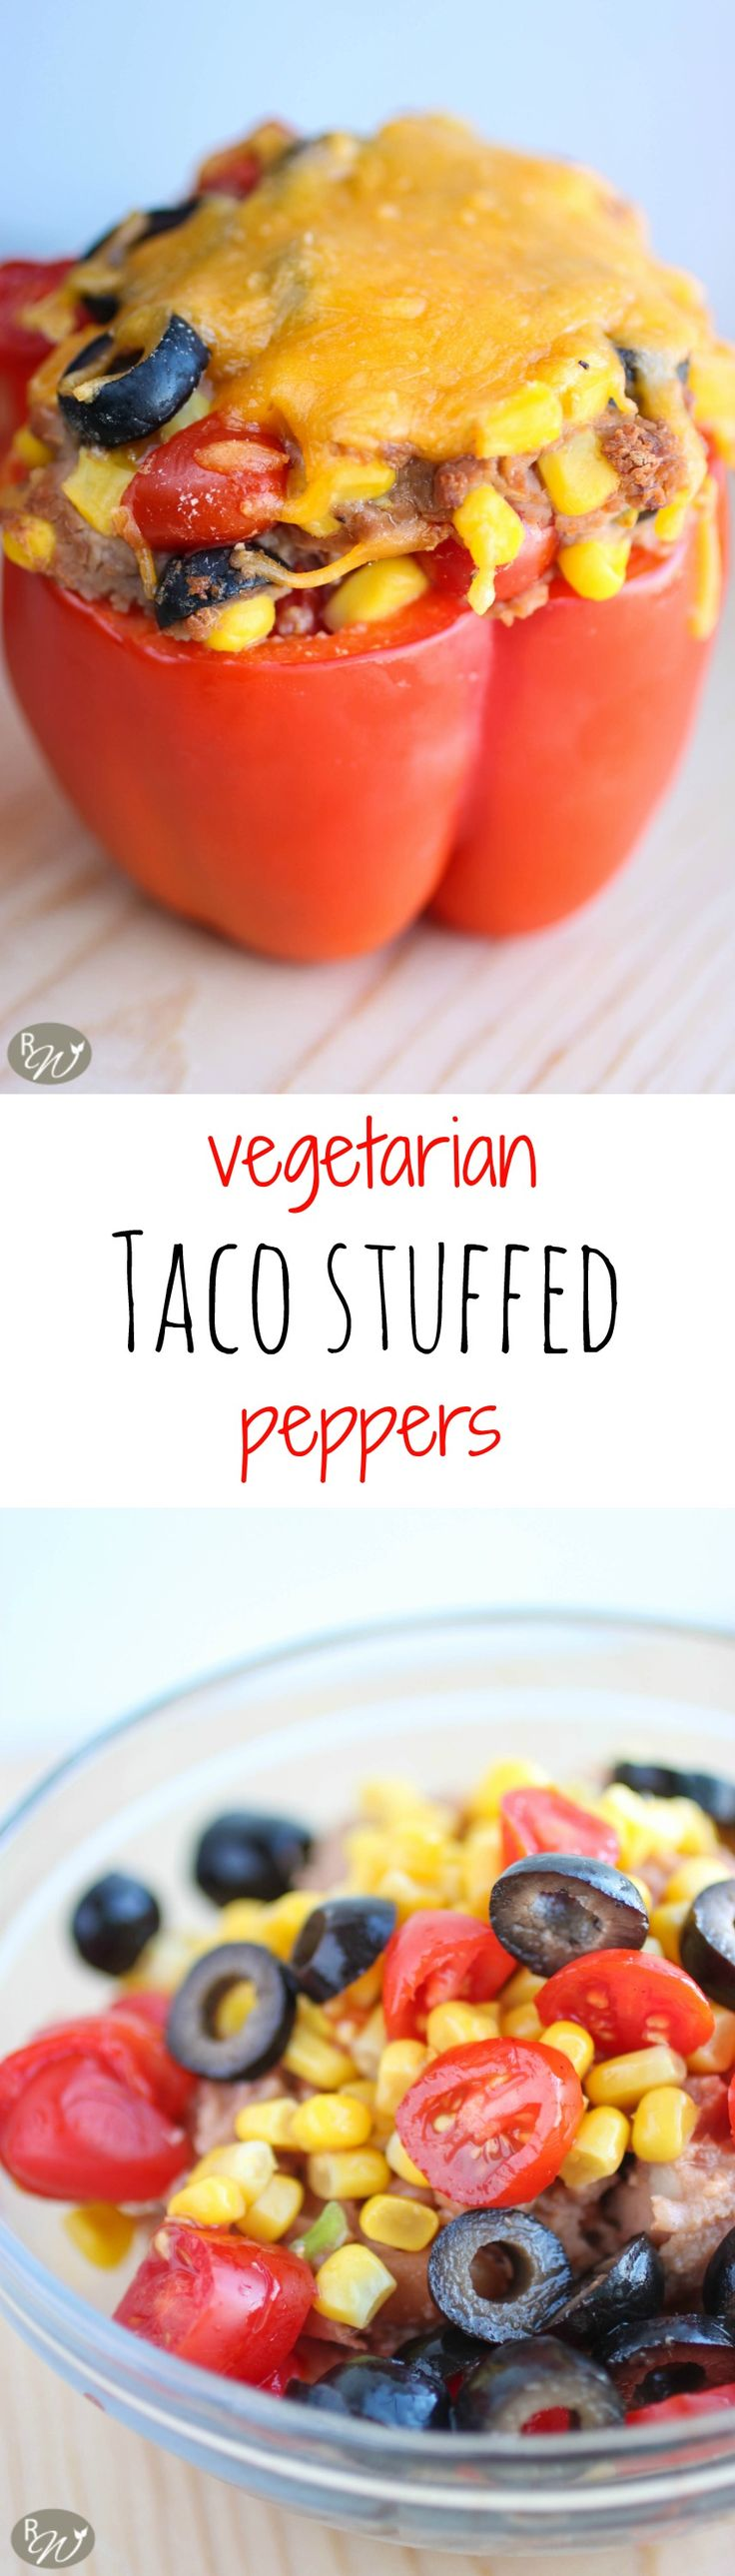 Vegetarian taco stuffed peppers--only require 6 ingredients, making this a quick, easy & healthy option for a meal! | therusticwillow.com